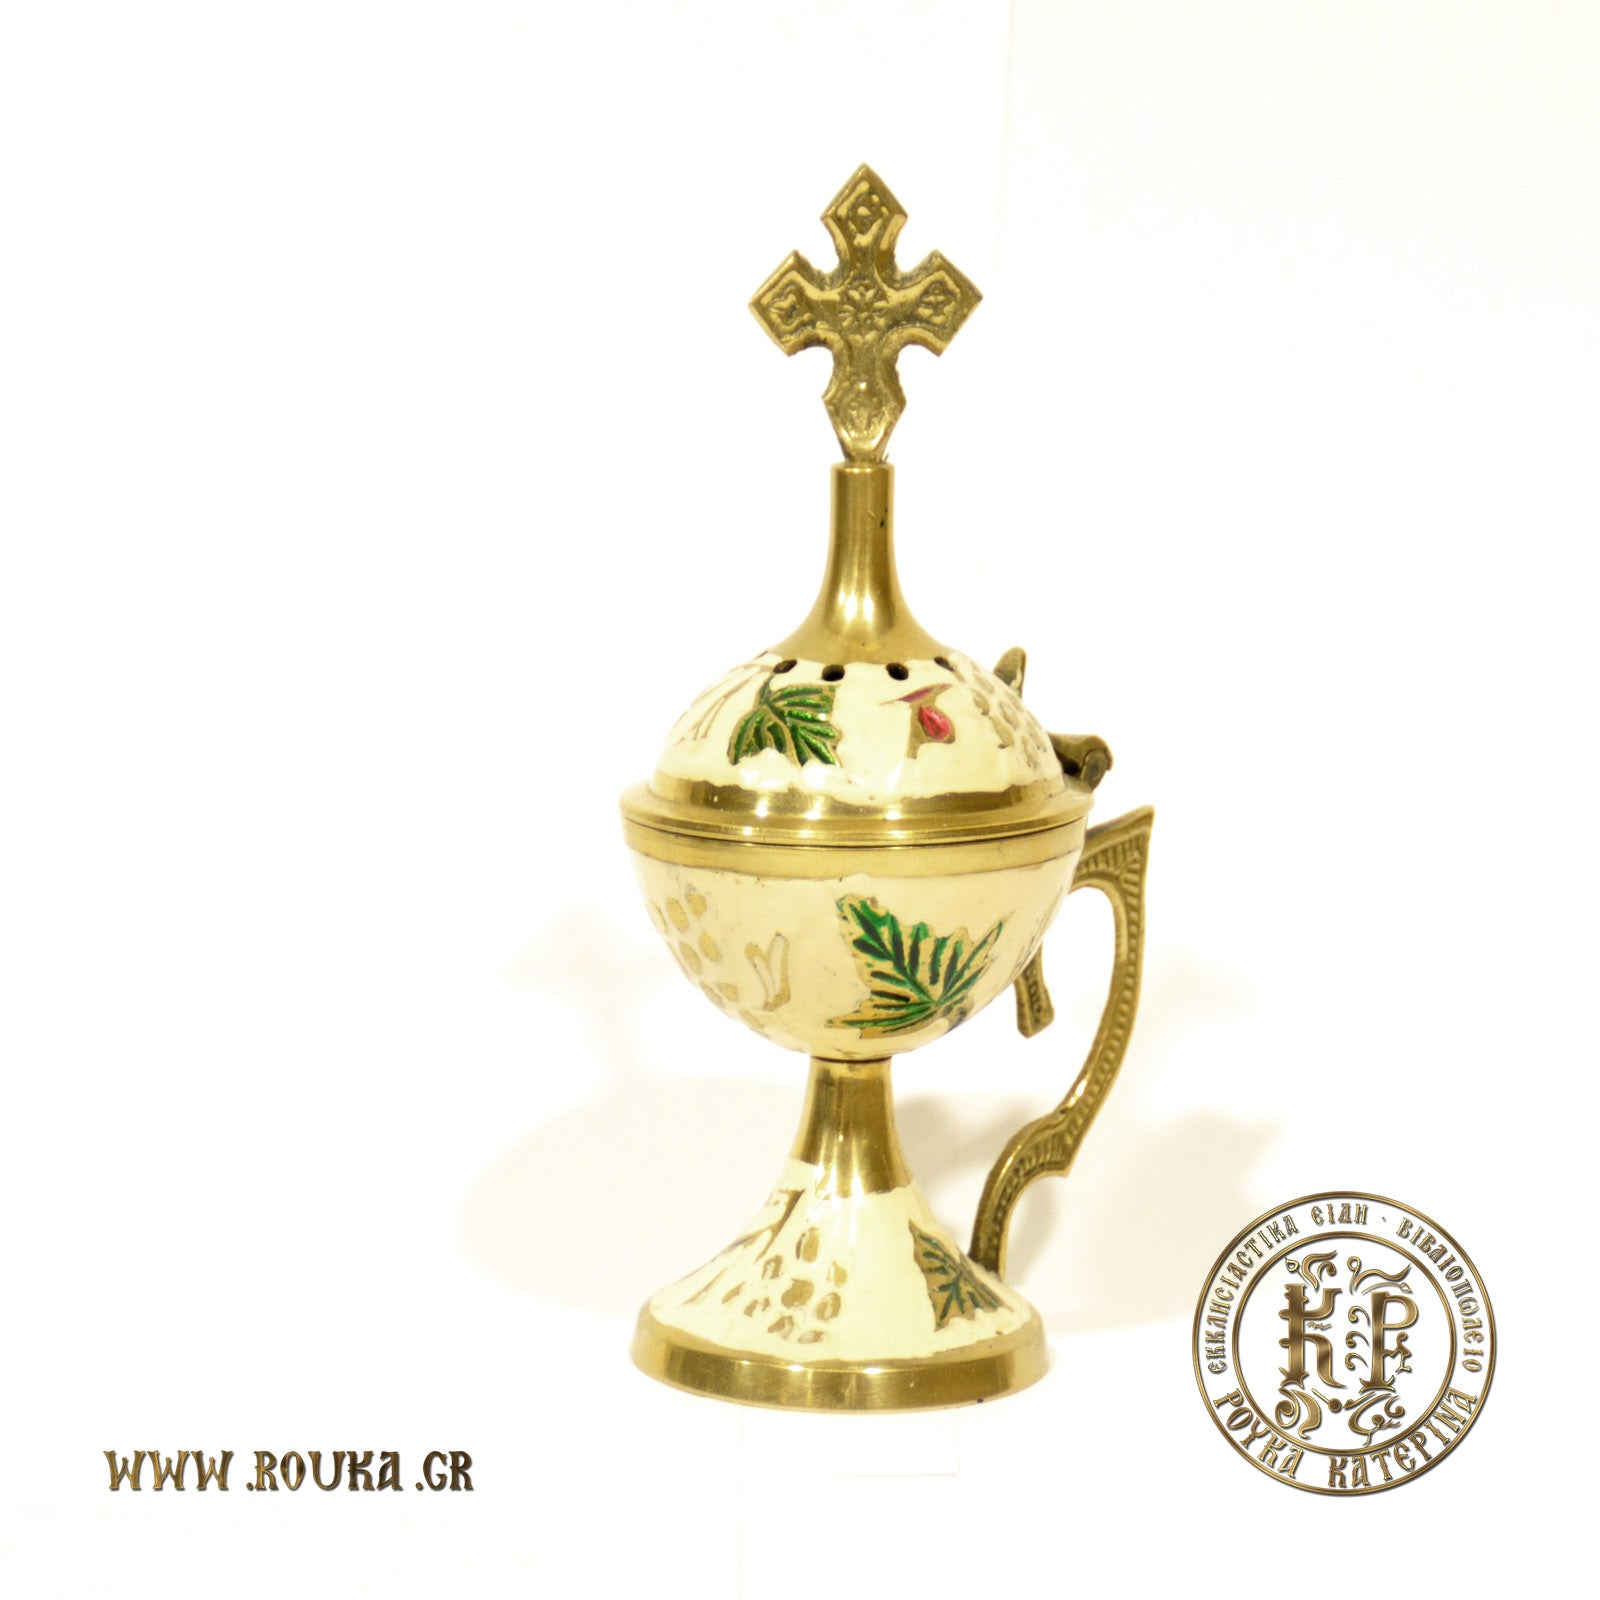 Bronze Home Censer with Enamel